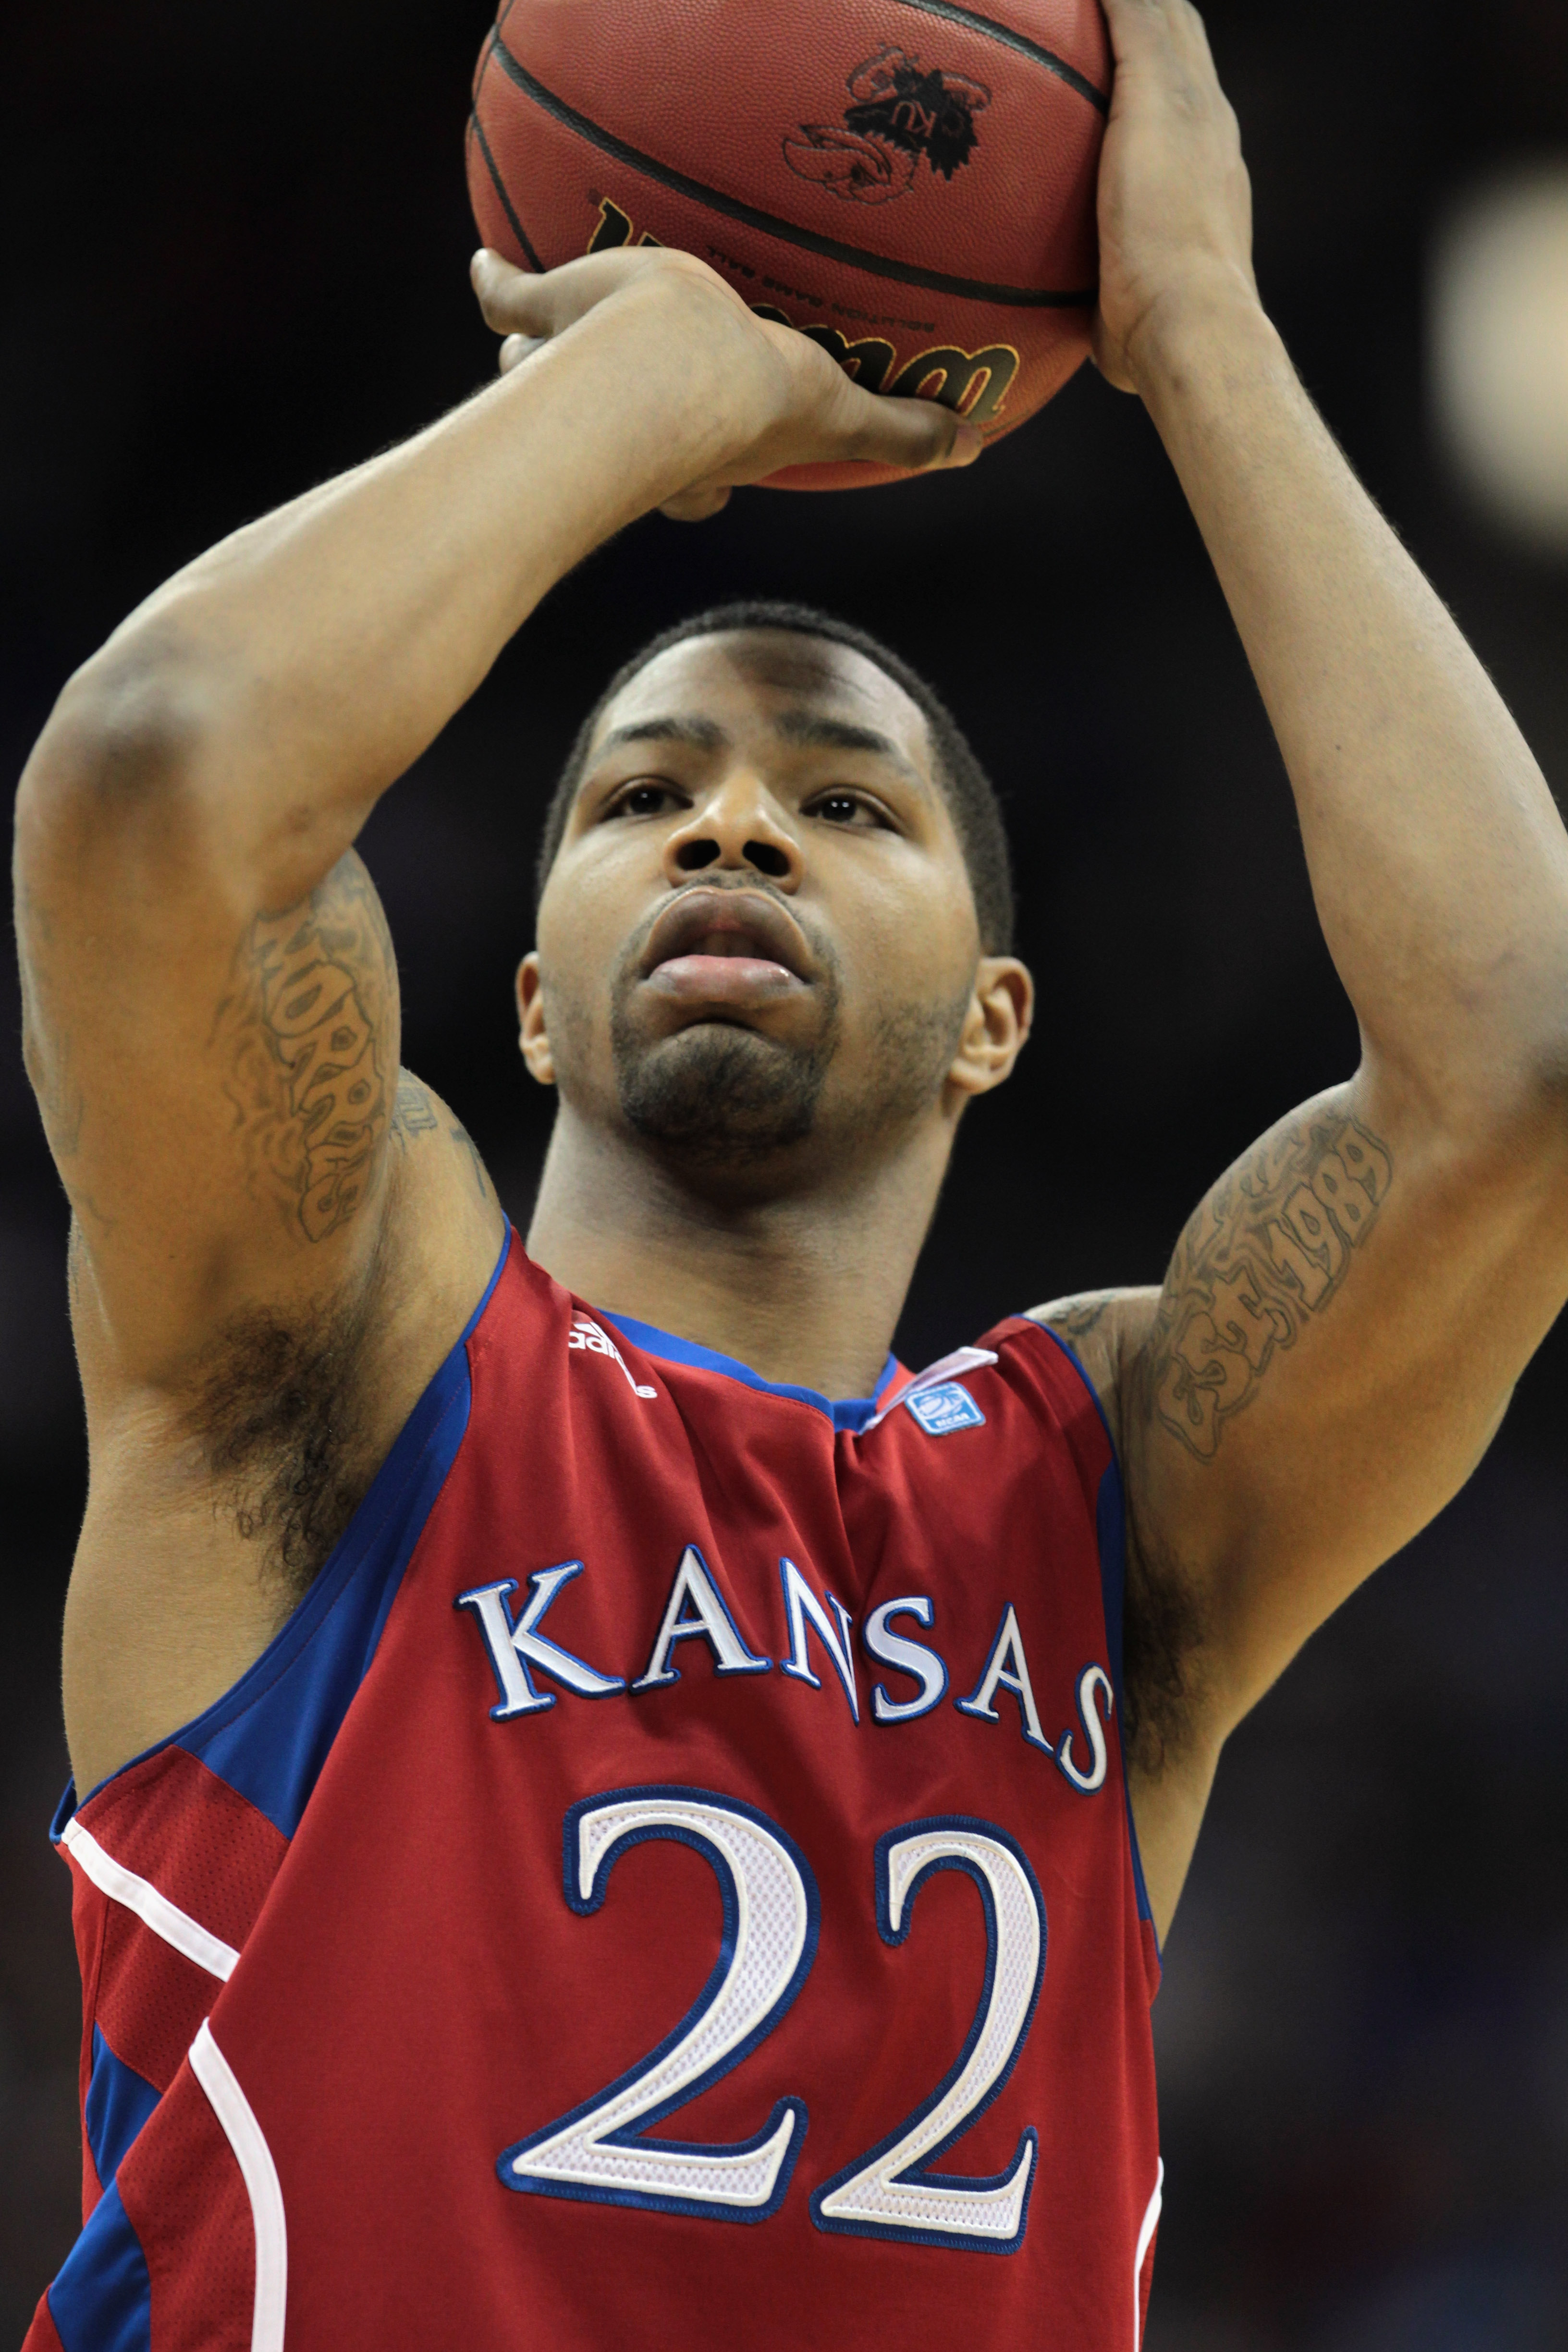 KANSAS CITY, MO - DECEMBER 11:  Marcus Morris #22 of the Kansas Jayhawks in action during the game against the Colorado State Rams on December 11, 2010 at the Sprint Center in Kansas City, Missouri.  (Photo by Jamie Squire/Getty Images)